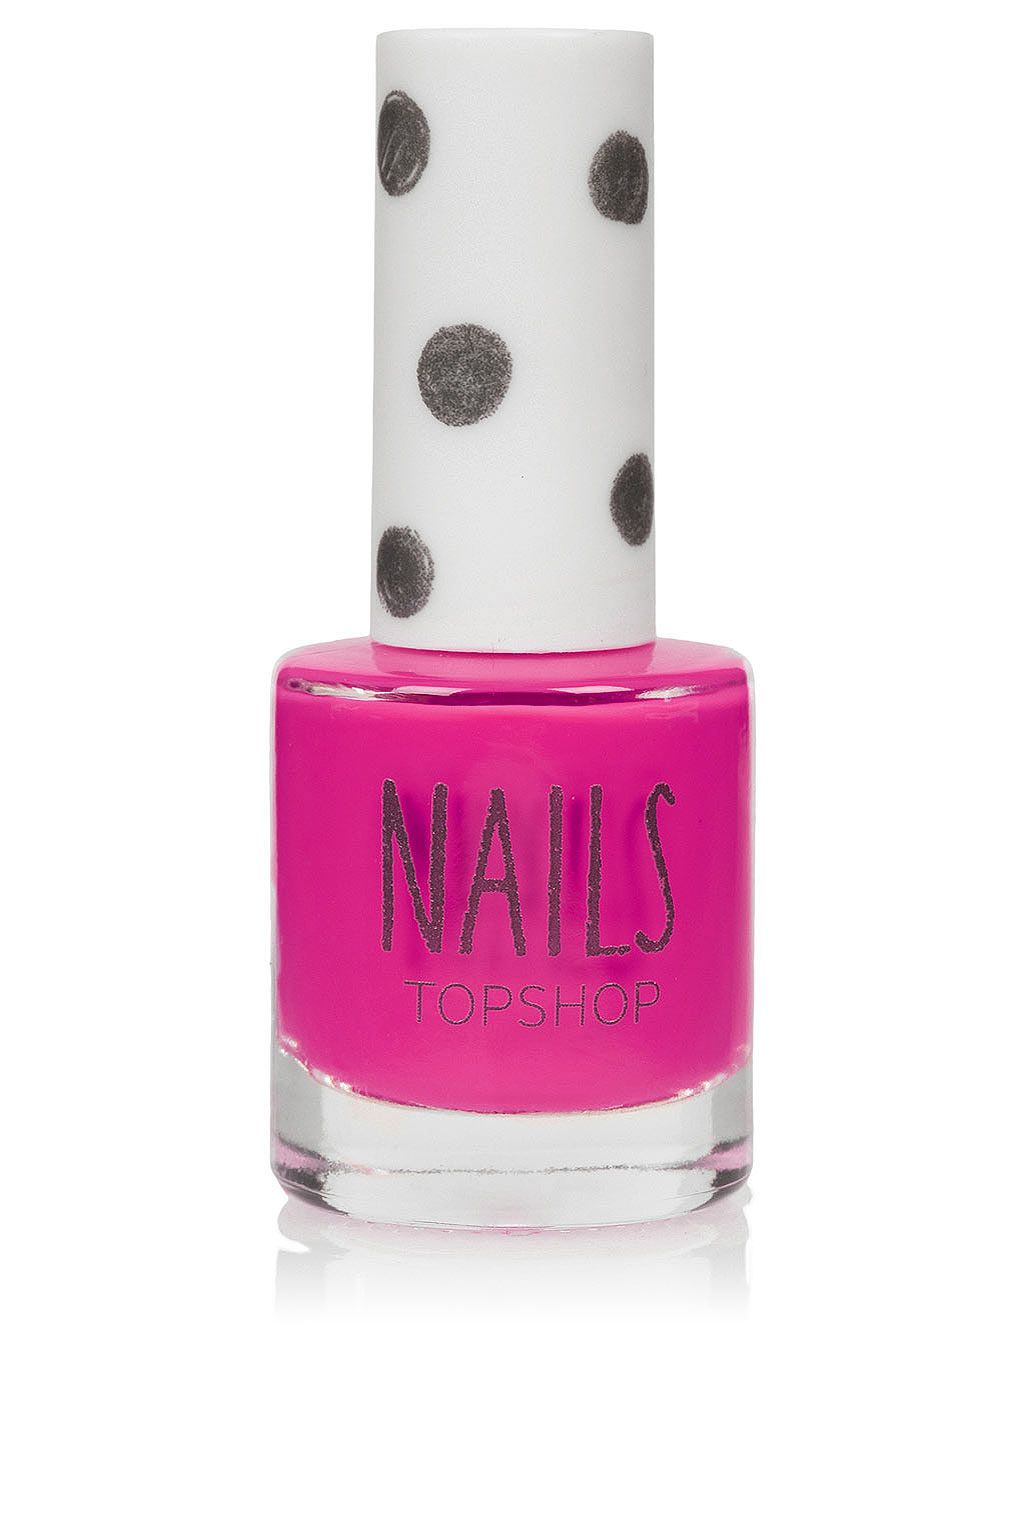 Nails in High Voltage - Nails - Beauty | Pinterest | Neon pink nails ...